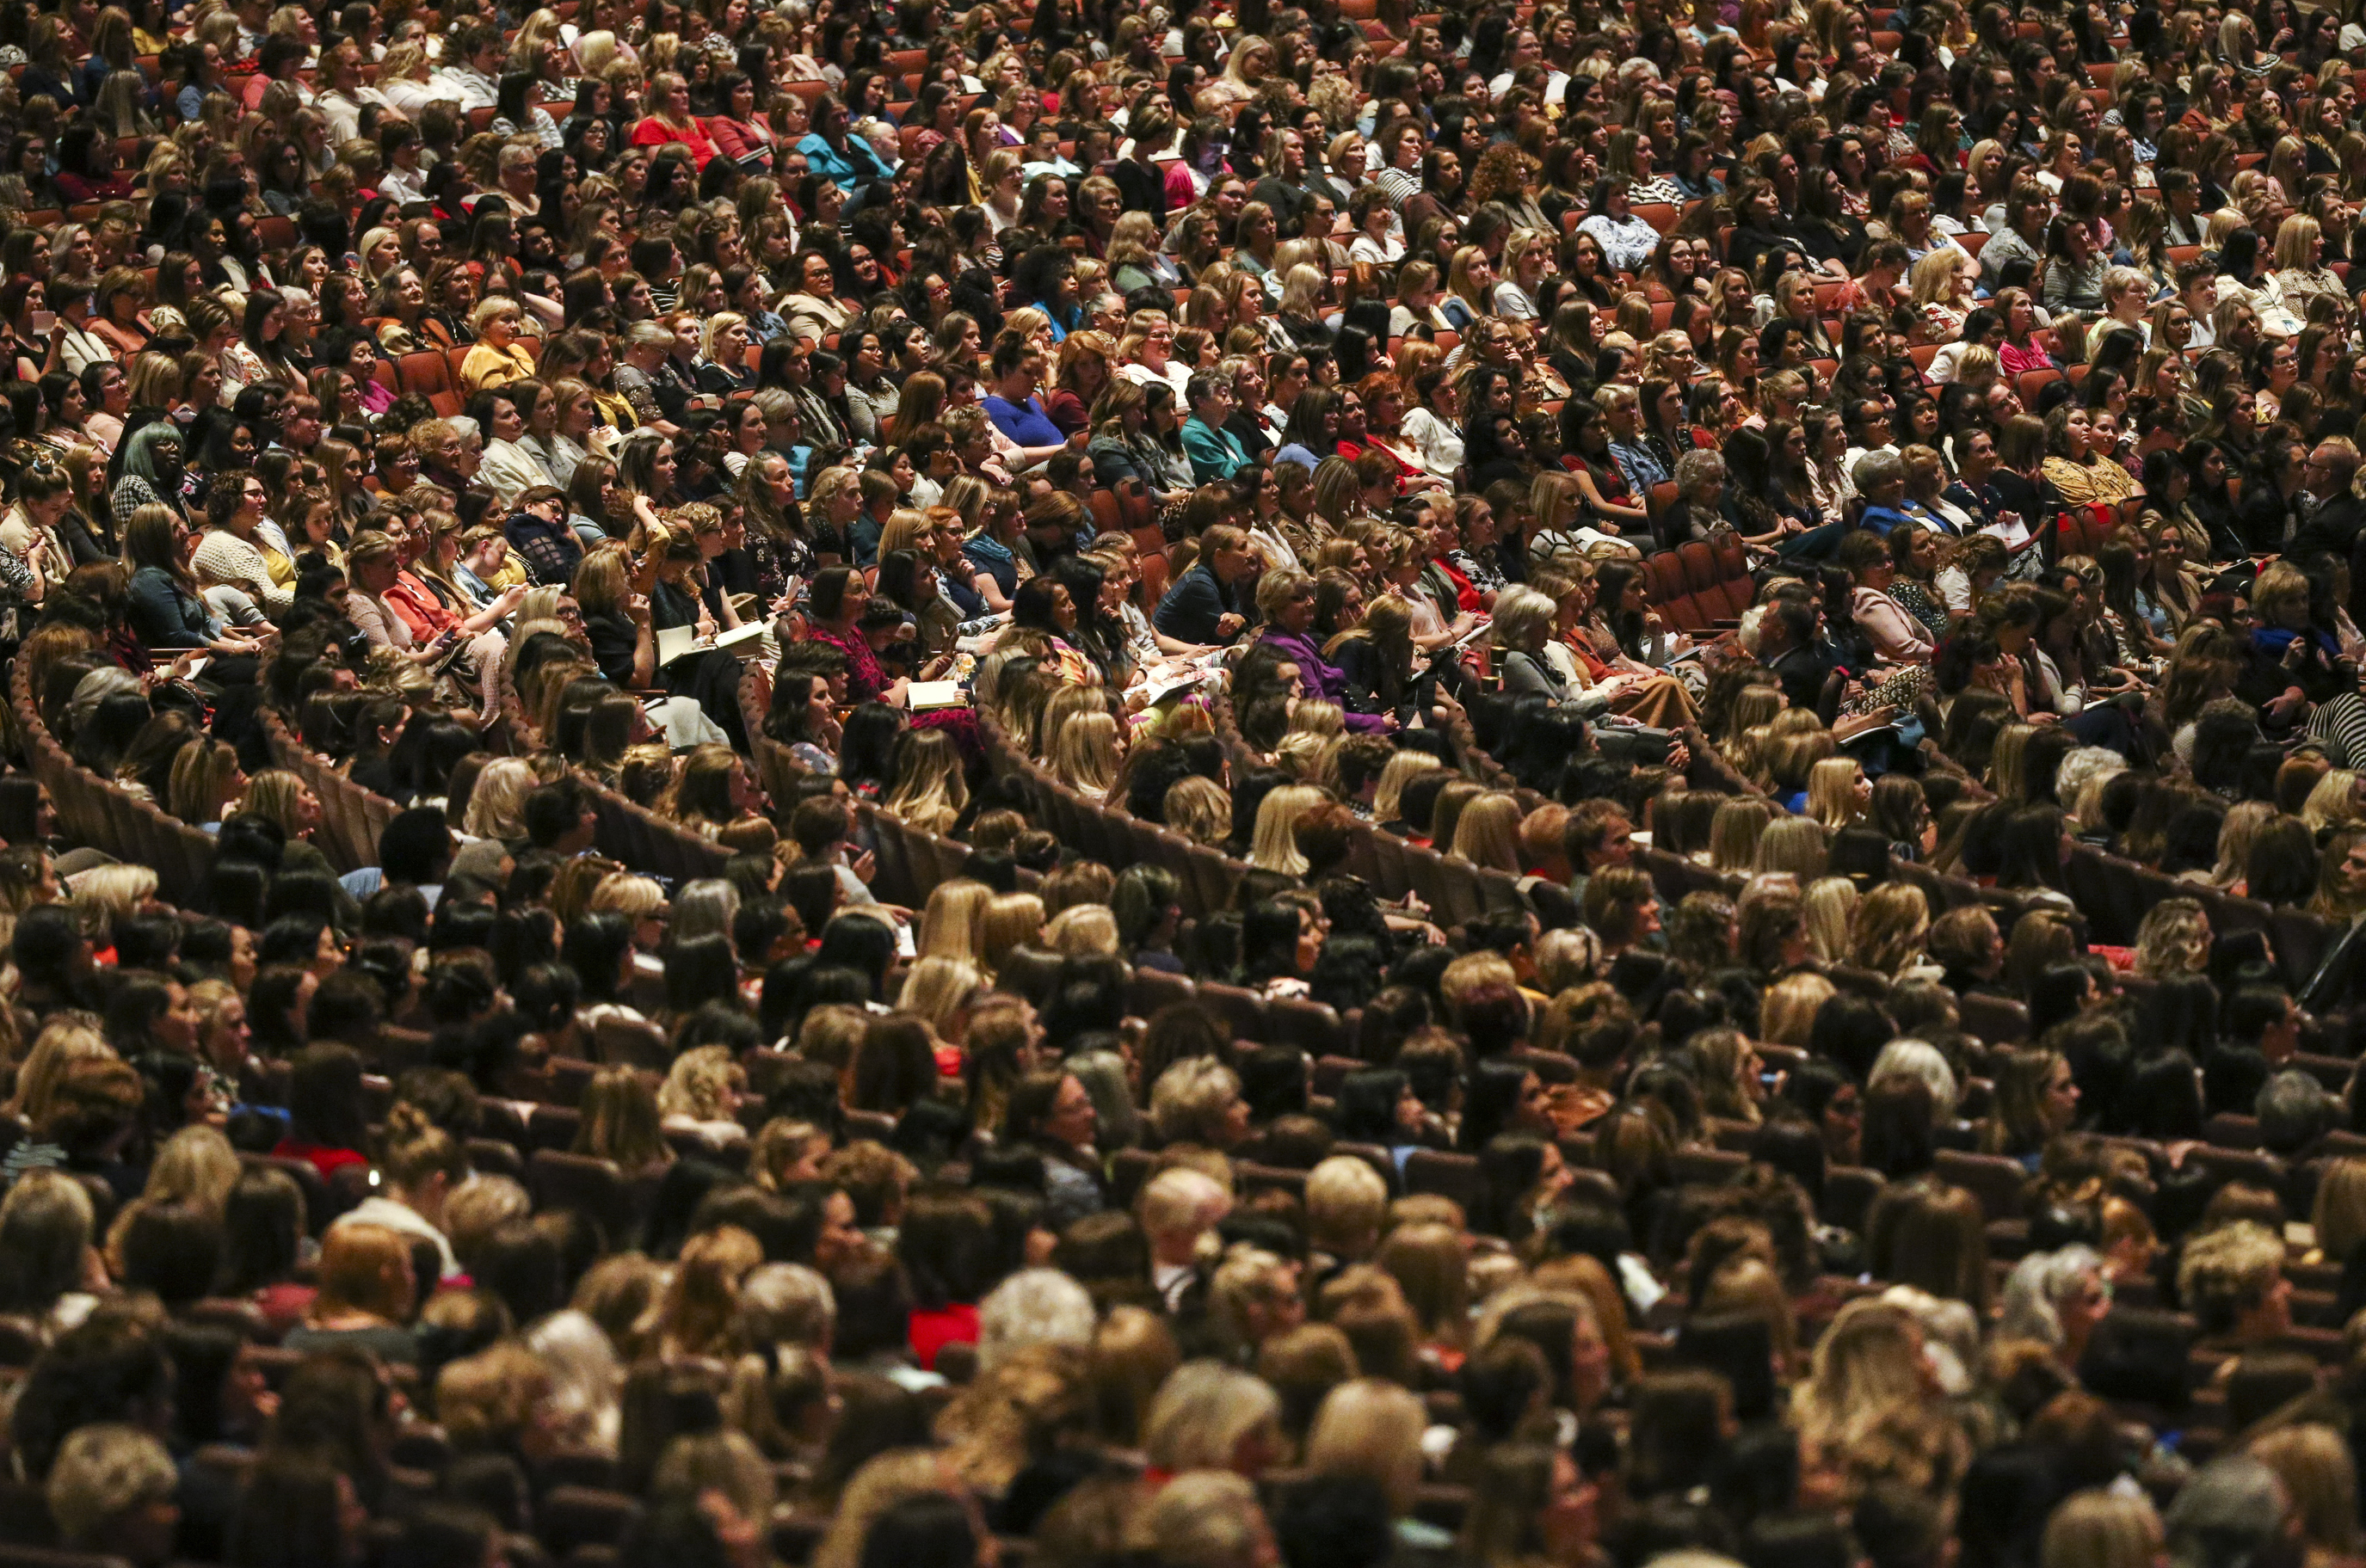 Women pack the Conference Center during the women's session of the 189th Semiannual General Conference of The Church of Jesus Christ of Latter-day Saints in Salt Lake City on Saturday, Oct. 5, 2019.